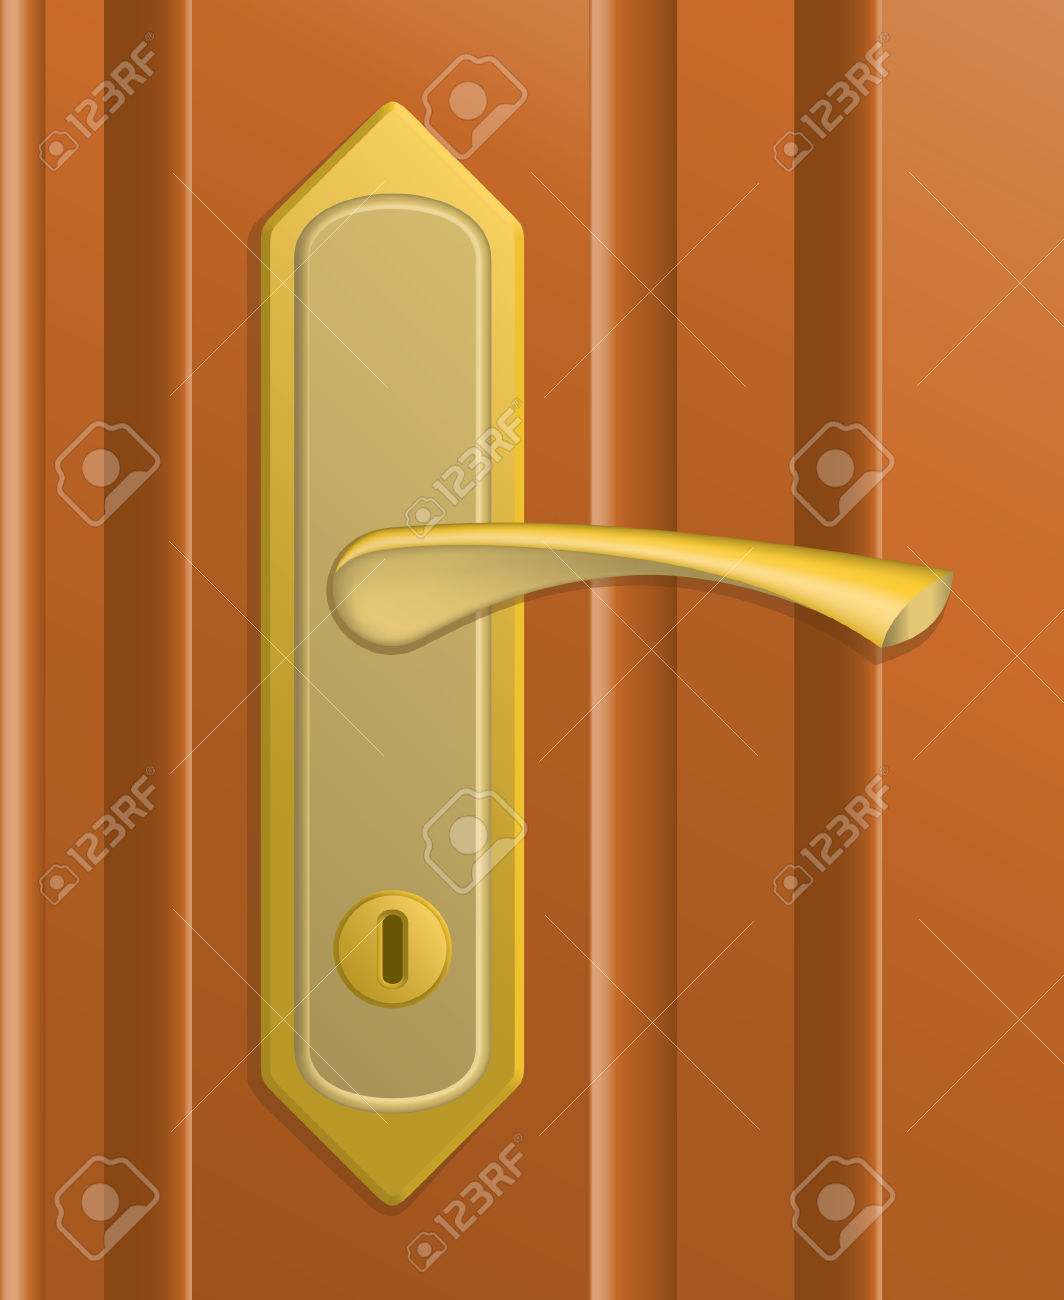 Door handle clipart.